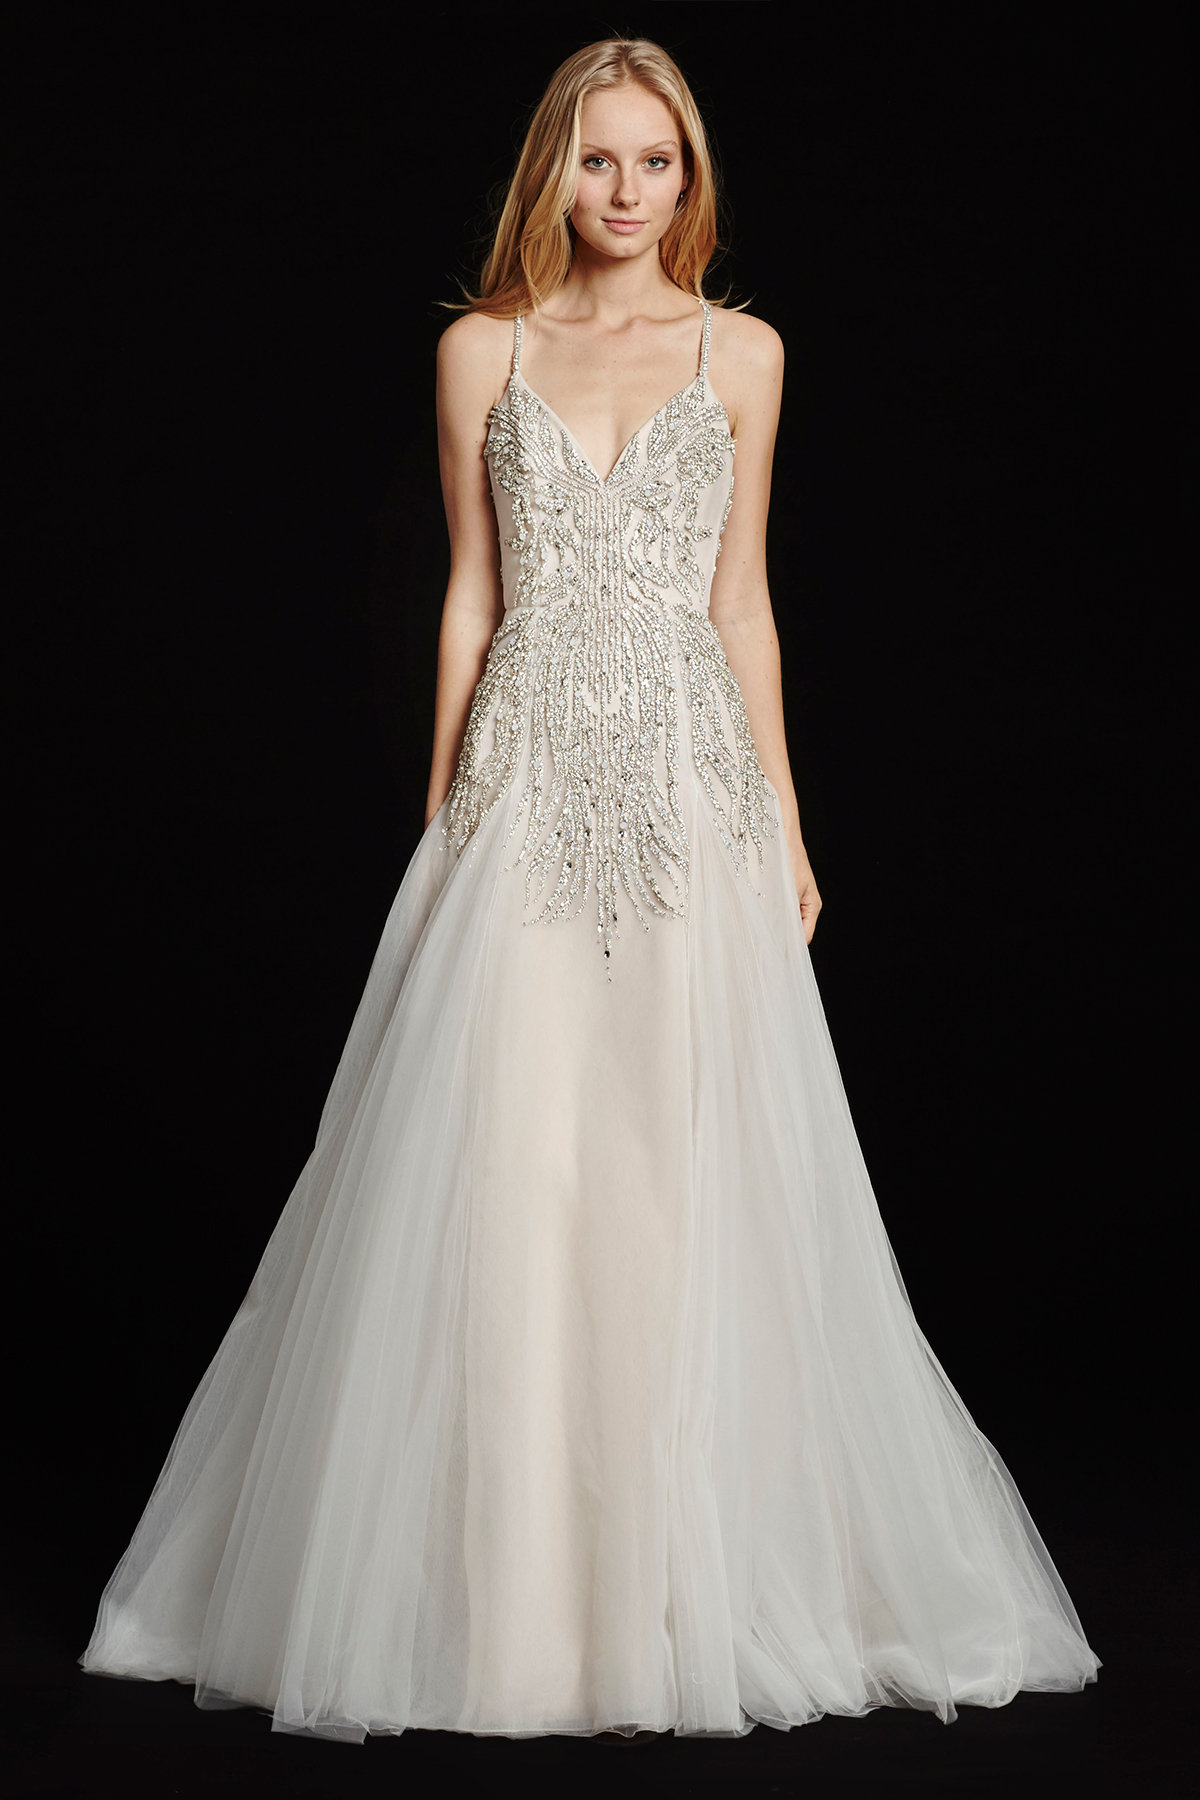 Bridal Gowns and Wedding Dresses by JLM Couture - Style 6608